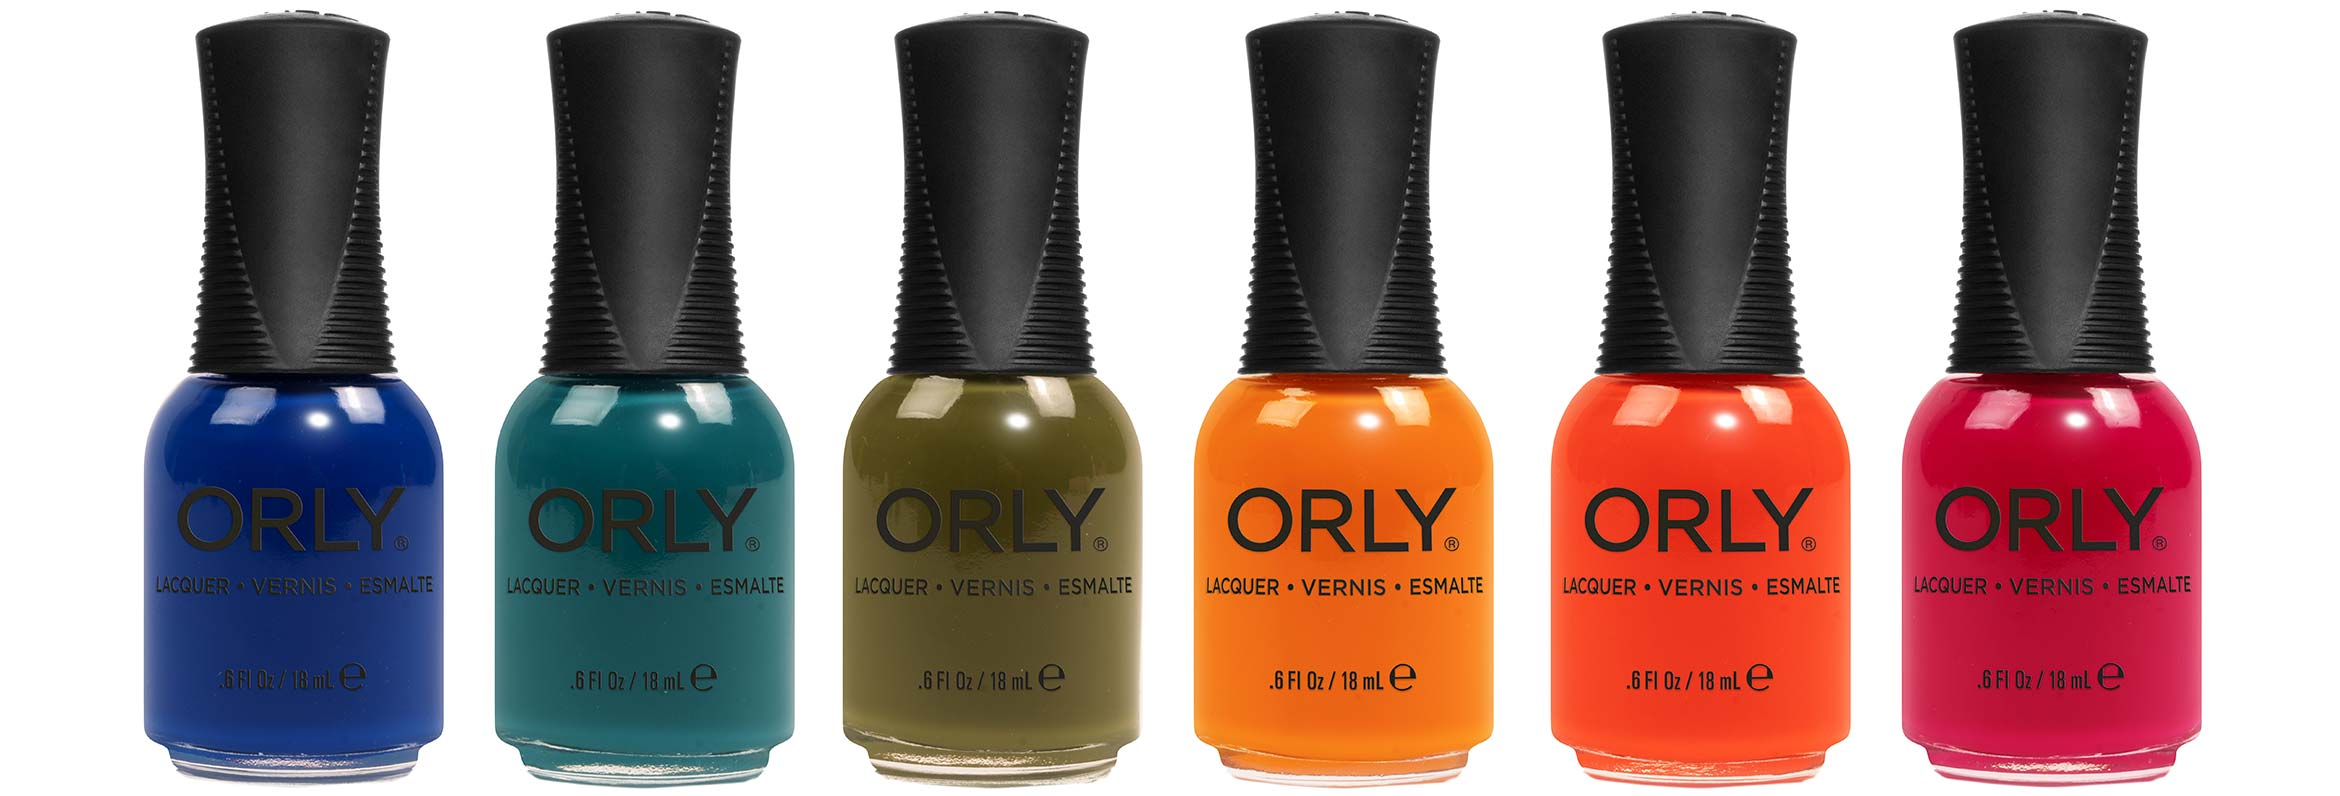 orly wild natured collection swatches orly herfst collectie